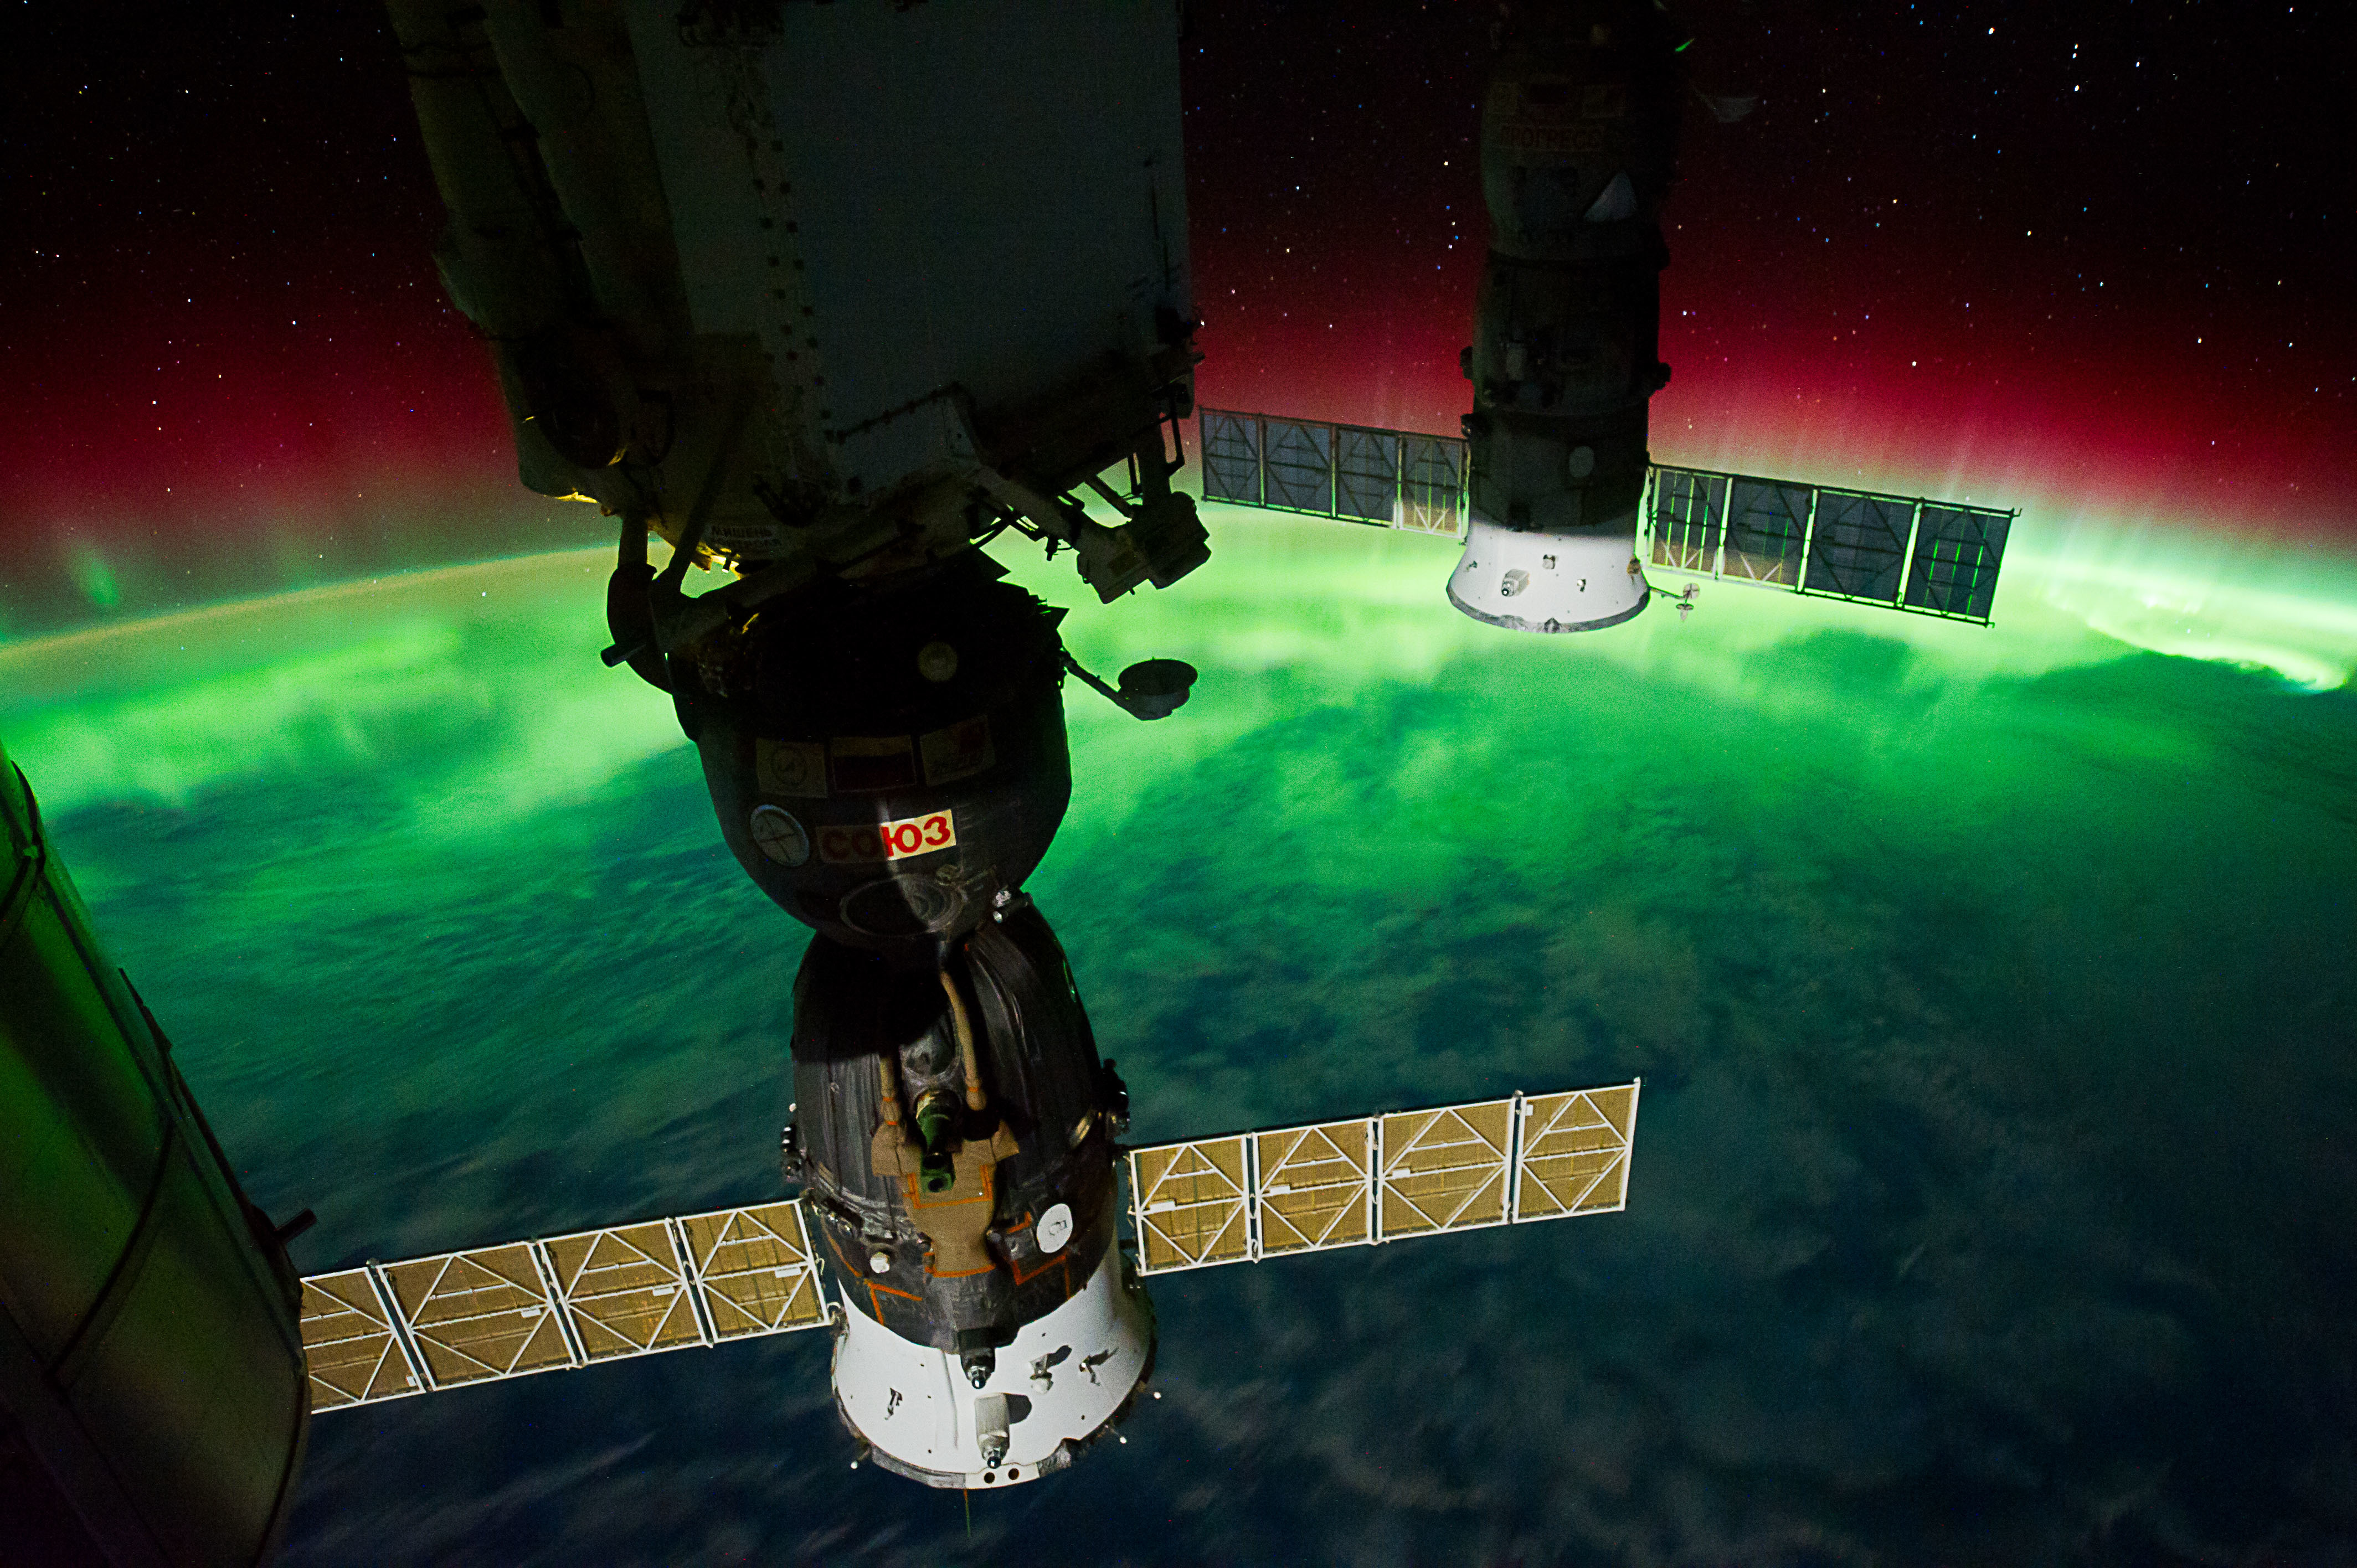 PICTURE SHOWS: (17 Sept. 2011) --- This is one of a series of night time images photographed by one of the Expedition 29 crew members from the International Space Station. It features Aurora Australis, seen from a point over the southeast Tasman Sea near southern New Zealand. The station was located at 46.65 degrees south latitude and 169.10 degrees east longitude.  ...   Prepare to have your mind blown - NASA has collected together a treasure trove of more than 140,000 images, videos and audio files.  The stunning collection consolidates imagery spread across more than 60 collections into one searchable location, called the NASA Image and Video Library website.  Cover Images have chosen a gallery of the most popular images currently on the website, which include the first American astronaut to walk in space and a self-portrait of NASA's Curiosity Mars rover.  The portal allows users to search and discover content from across the agency's many missions in aeronautics, astrophysics, Earth science, human spaceflight, and more.  The library is not comprehensive, but rather provides the best of what NASA makes available from a single point of presence on the web. Additionally, it is a living website, where new and archival images, video and audio files continually will be added.  When: 17 Sep 2011